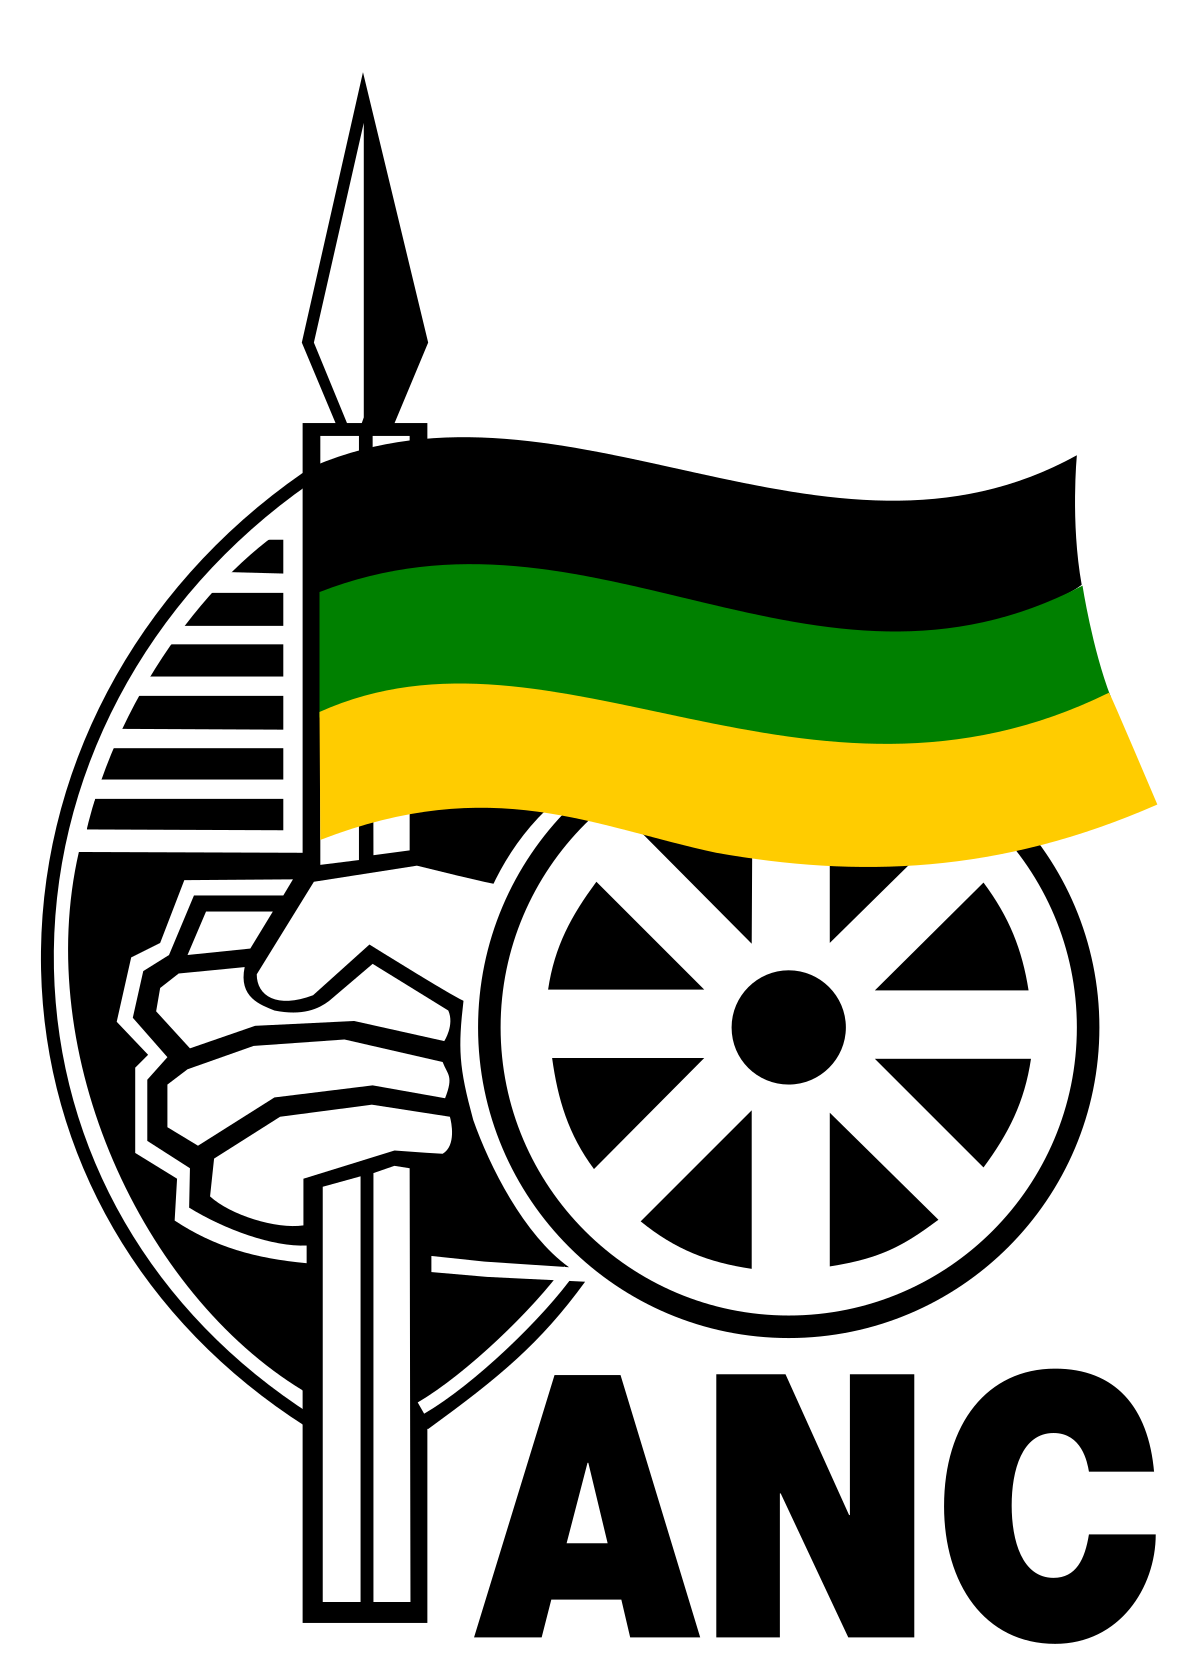 Democracy clipart class vice president. African national congress wikipedia